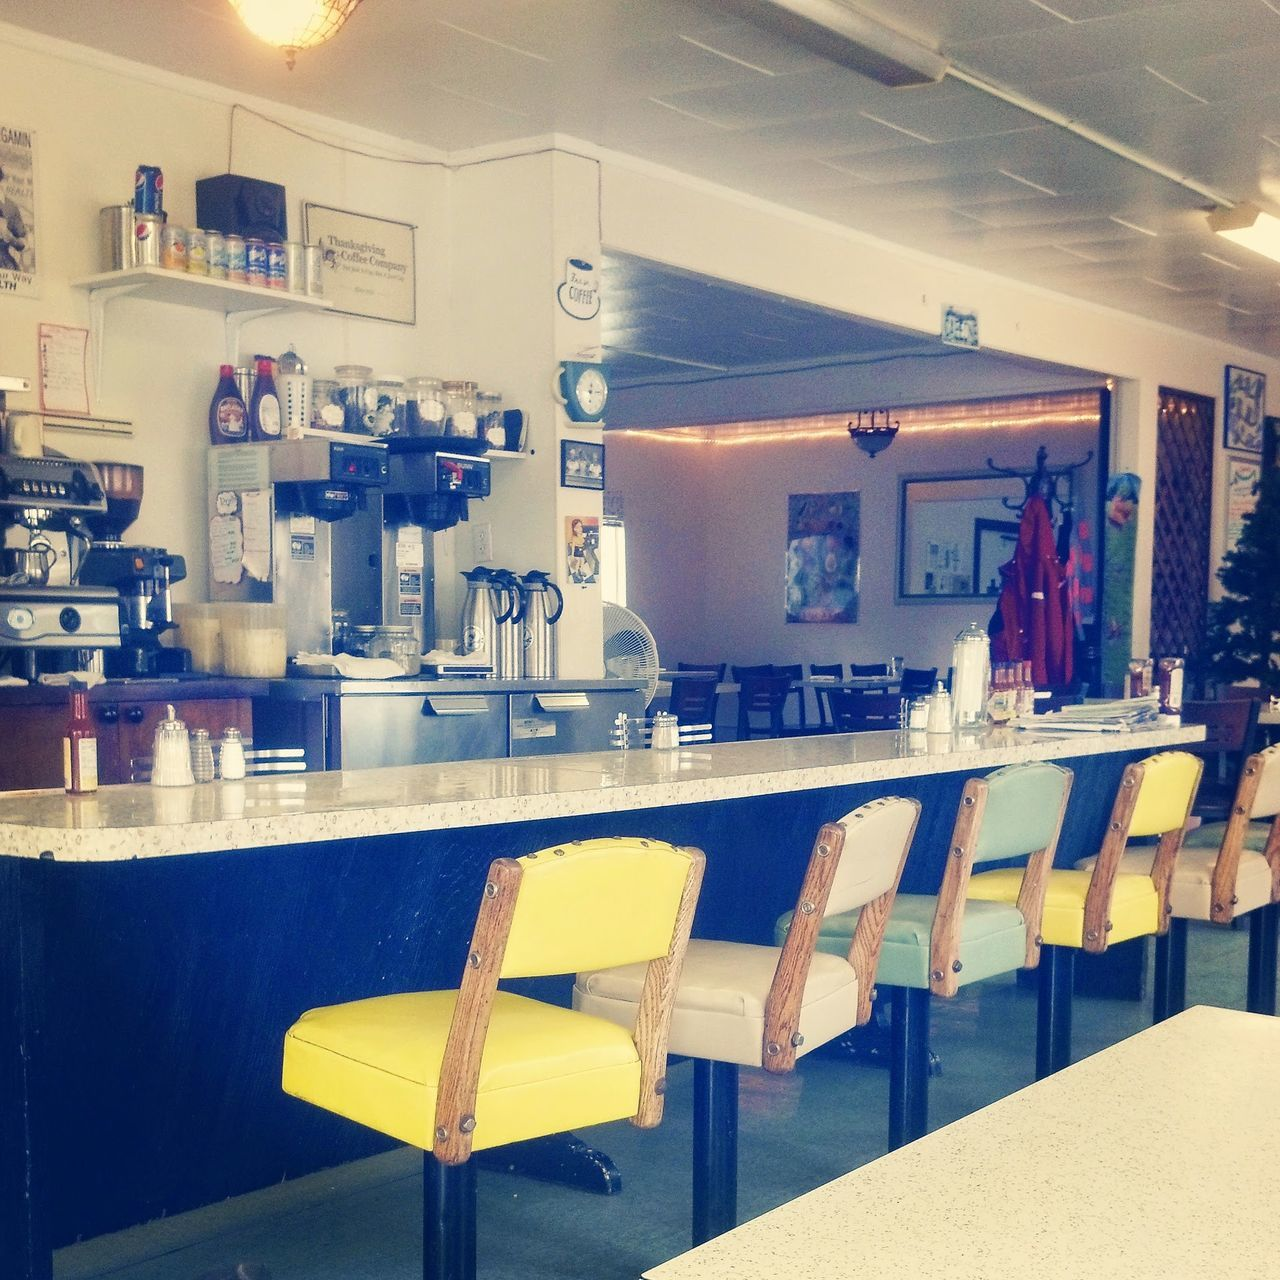 My Favorite Place Indoors  No People Cafe1 FortBraggin'! Fortbragg FortBraggCA Diner DinersDriveInsDives Diner♥ WestCoast Cafe